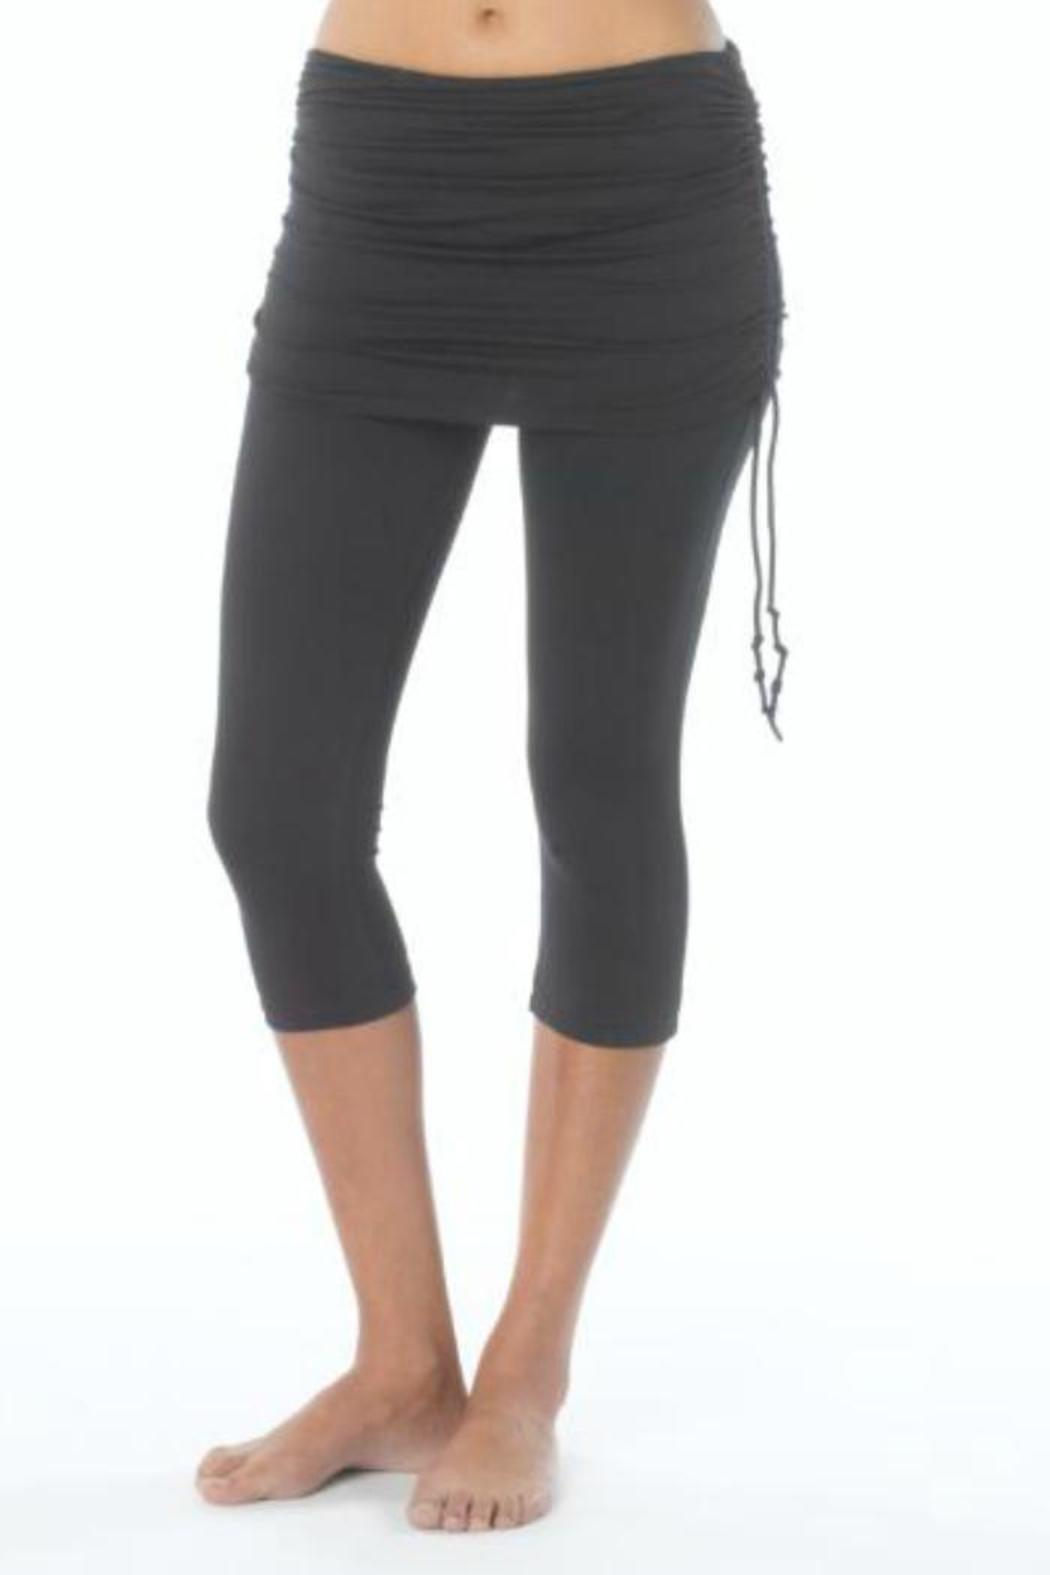 87f81ecdc1bbb Prana Fitted Skirt Capris from Maryland by Serenity Fitness Boutique ...